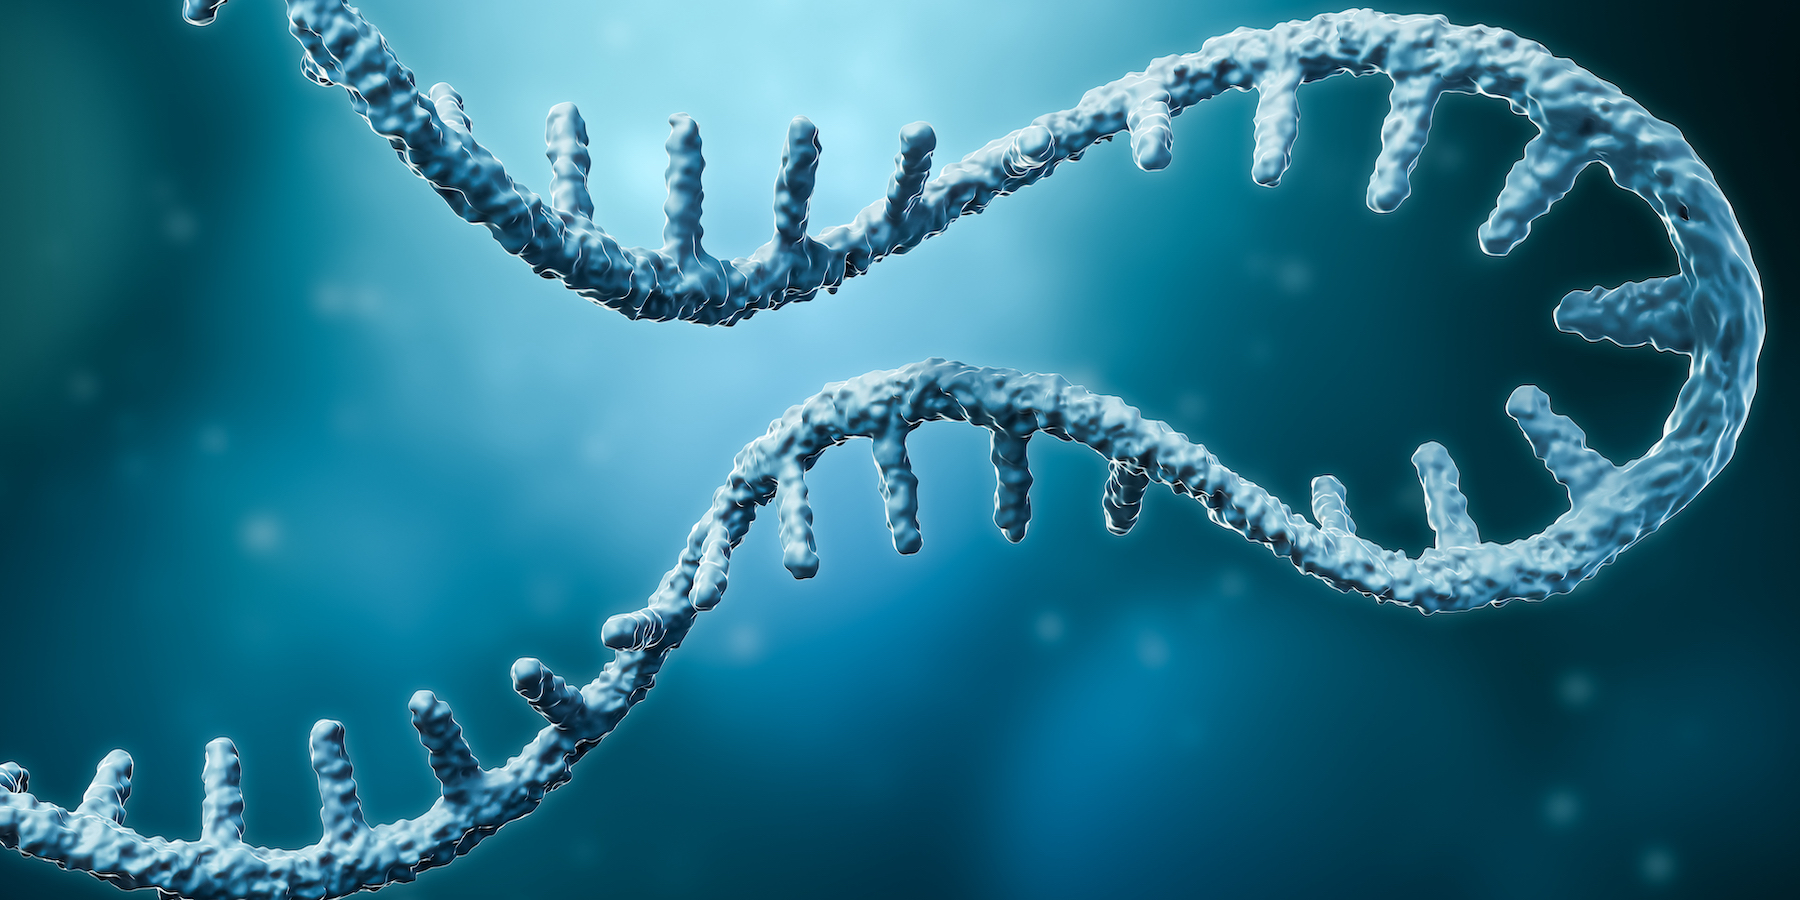 OliX launches mCureX for mRNA vaccines